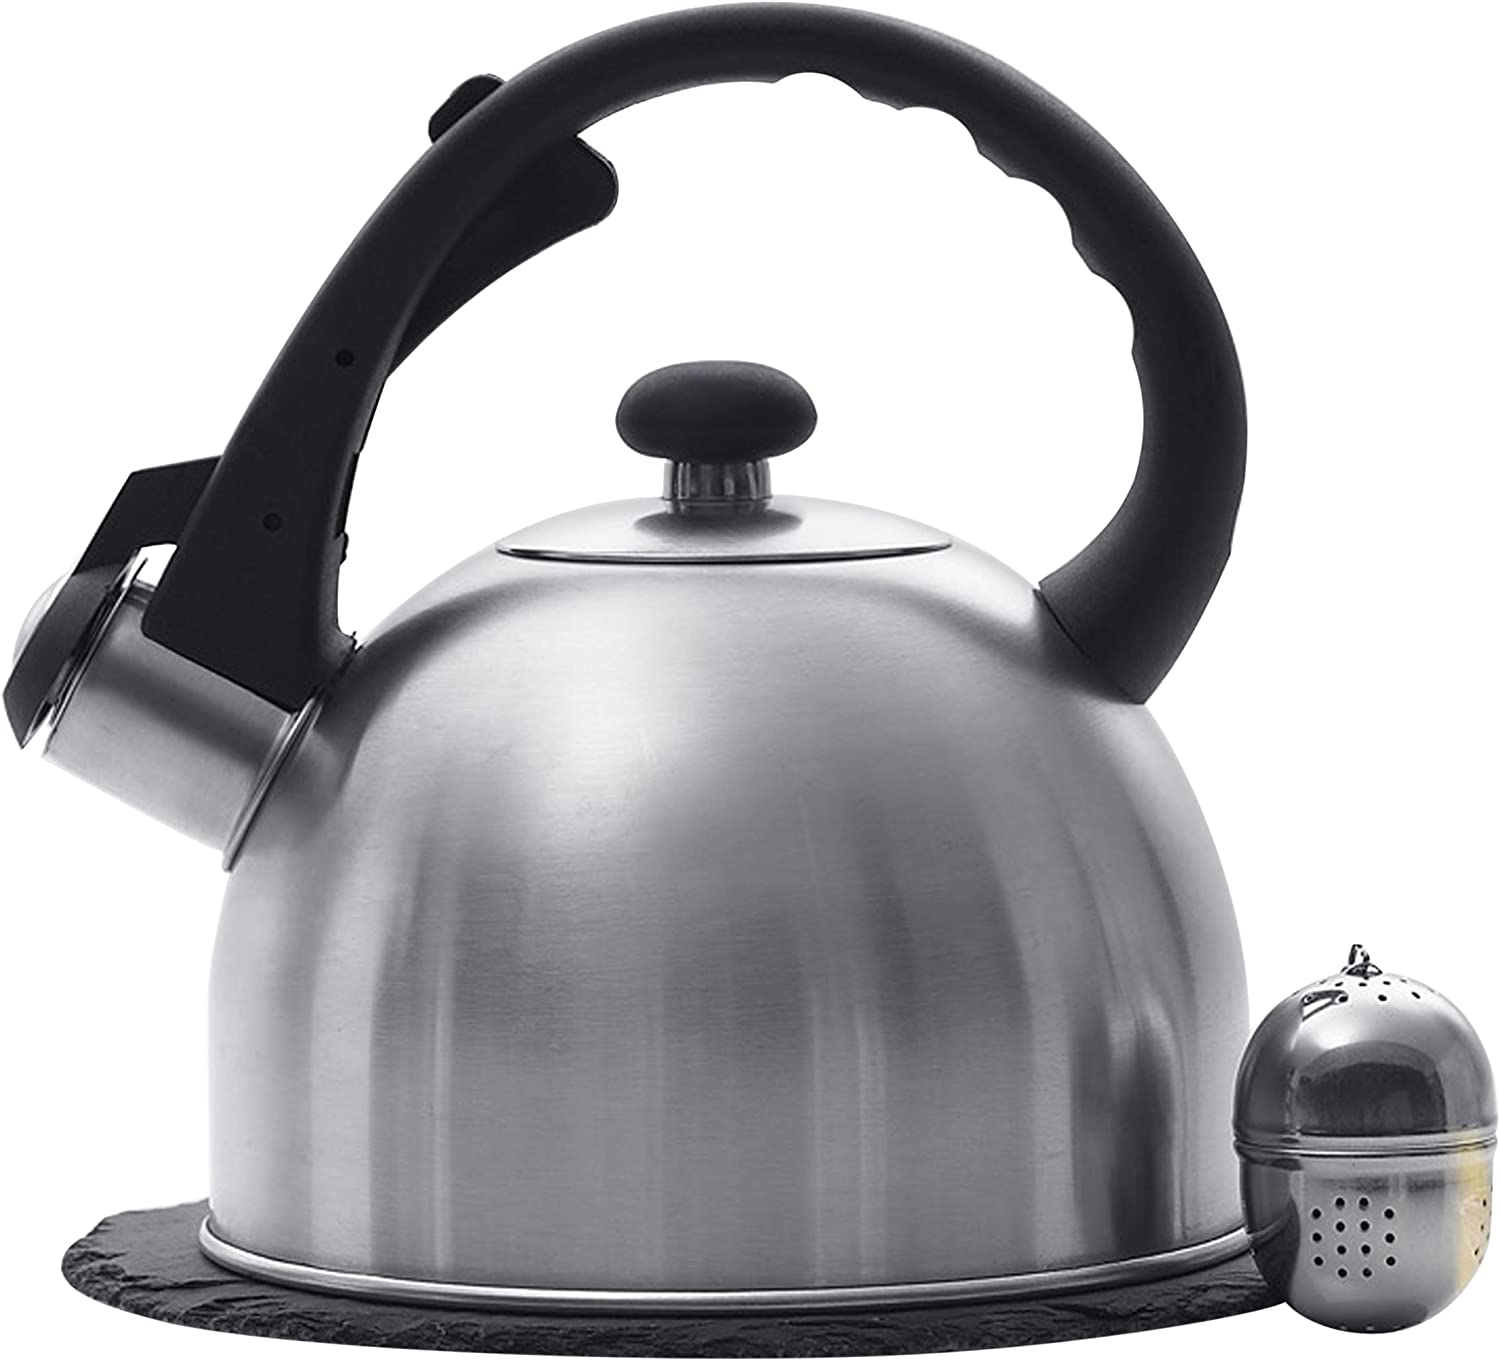 "Creative Home 1.5 Qt. Stainless Steel Tea Kettle with Tea Infuser and 7.5"" Slate Trivet, 3 pc Set"